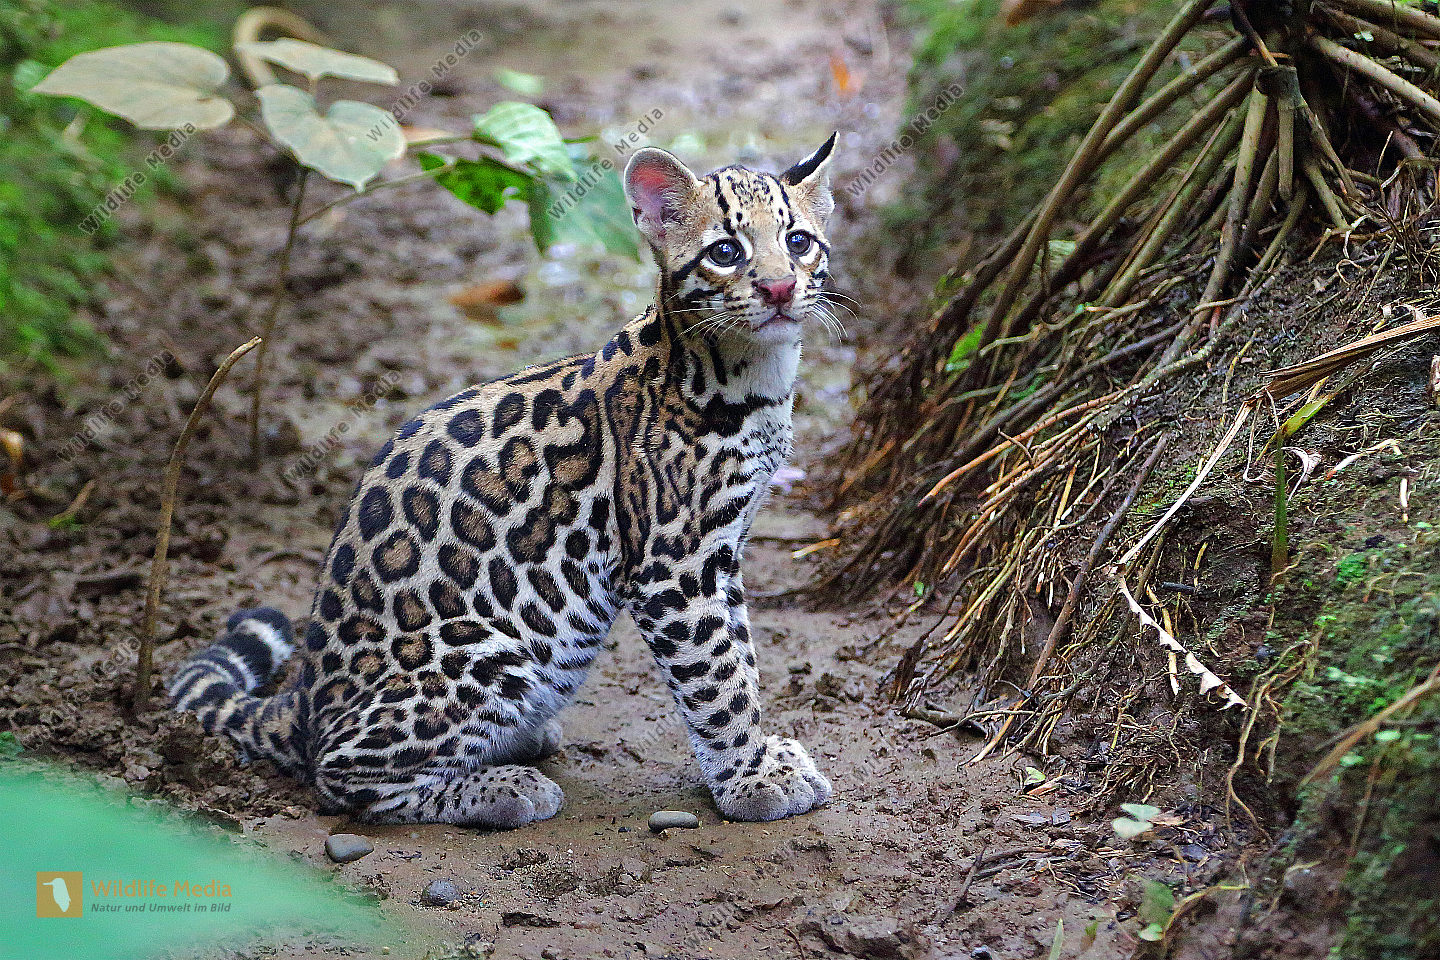 Ozelot synonyms Ozelot pronunciation Ozelot translation English dictionary definition of Ozelot n A nocturnal wildcat of brush and woodland from southwest North America to central South America having a grayish or yellow coat with black spots Ozelot  definition of Ozelot by The Free Dictionary